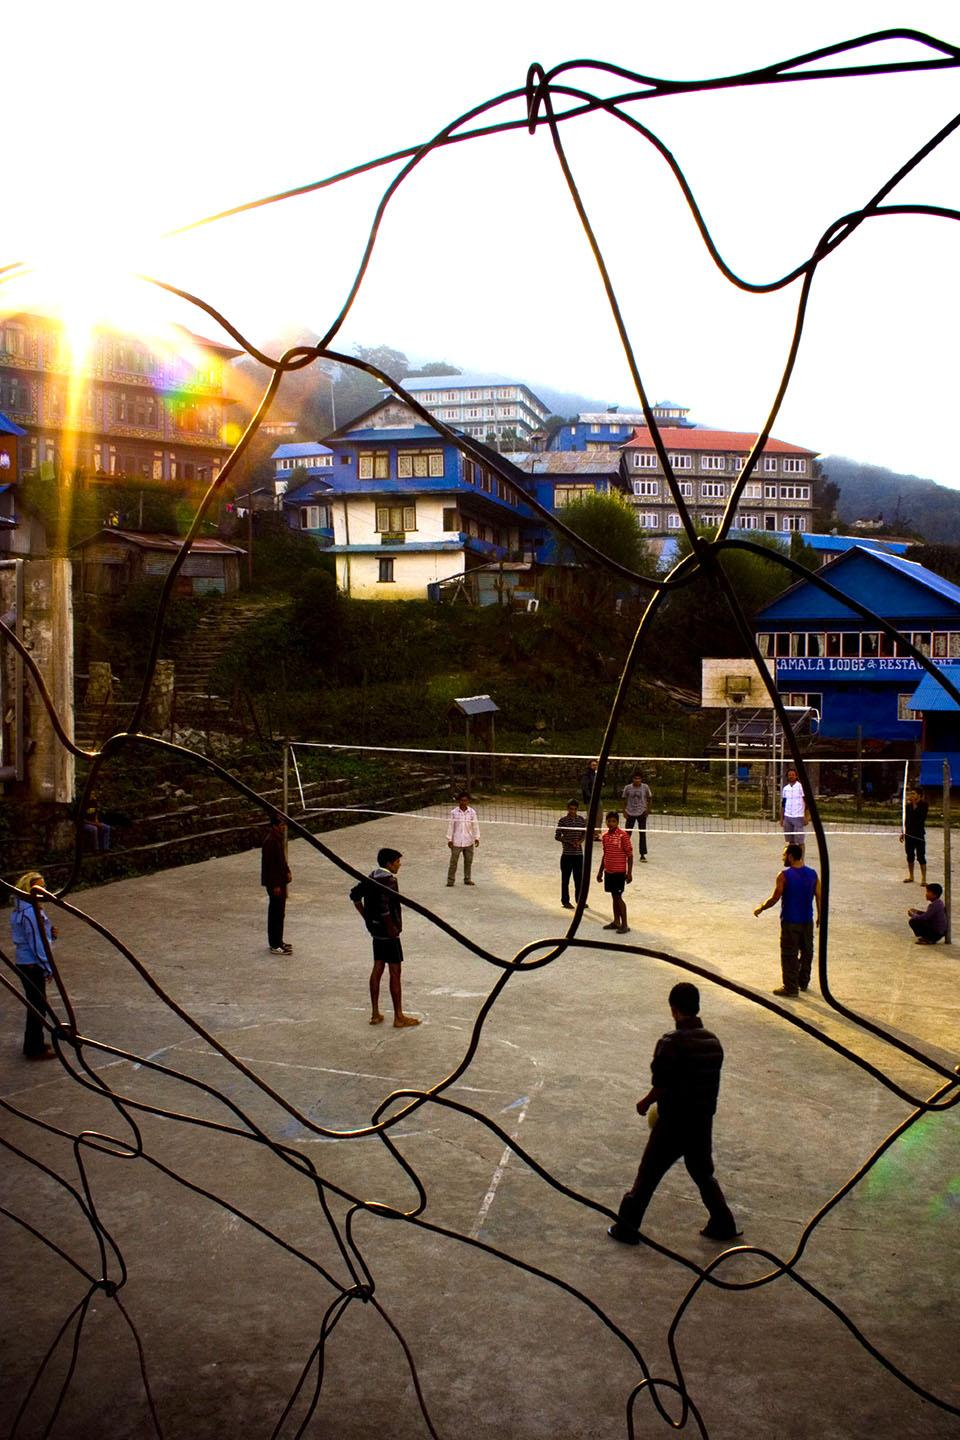 Chances are that these kids, playing on a basketball court in Nepal, aren't experiencing the same privileged lifestyle that many kids in North America are born into. Photo by Kimberly Bryant.